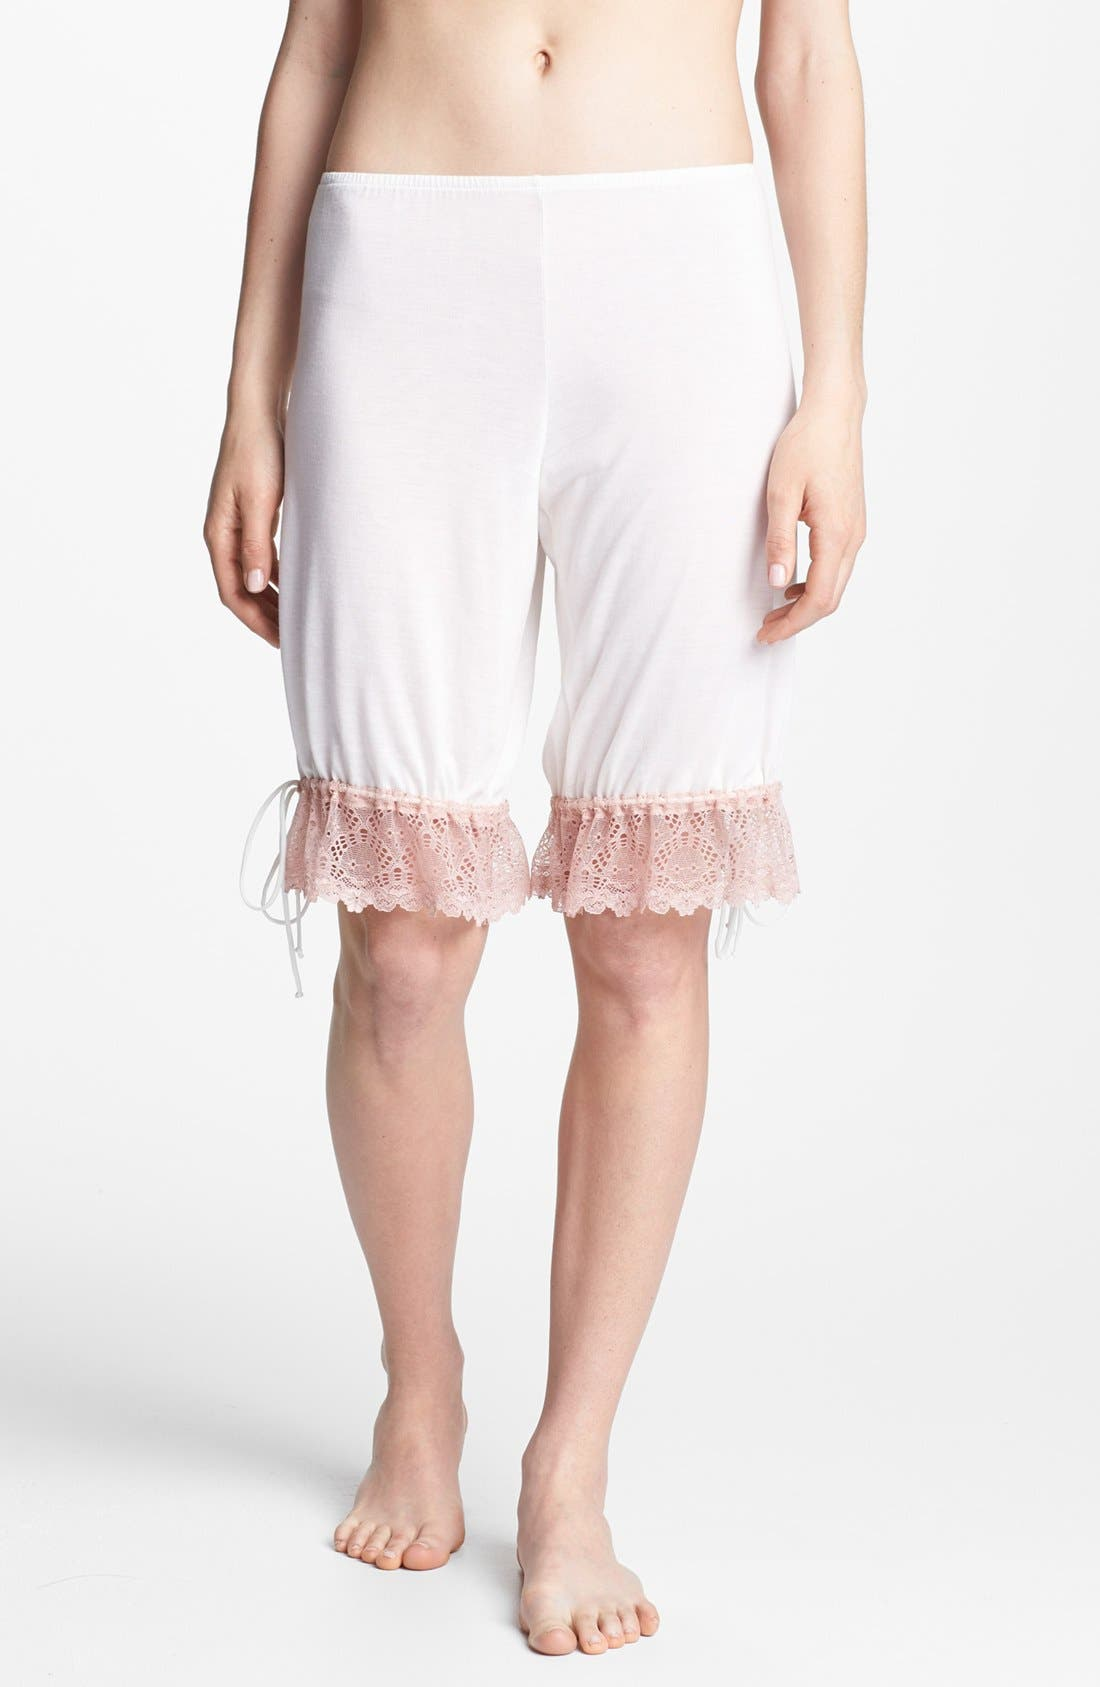 Alternate Image 1 Selected - Only Hearts 'Venice' Lace Trim Shorts